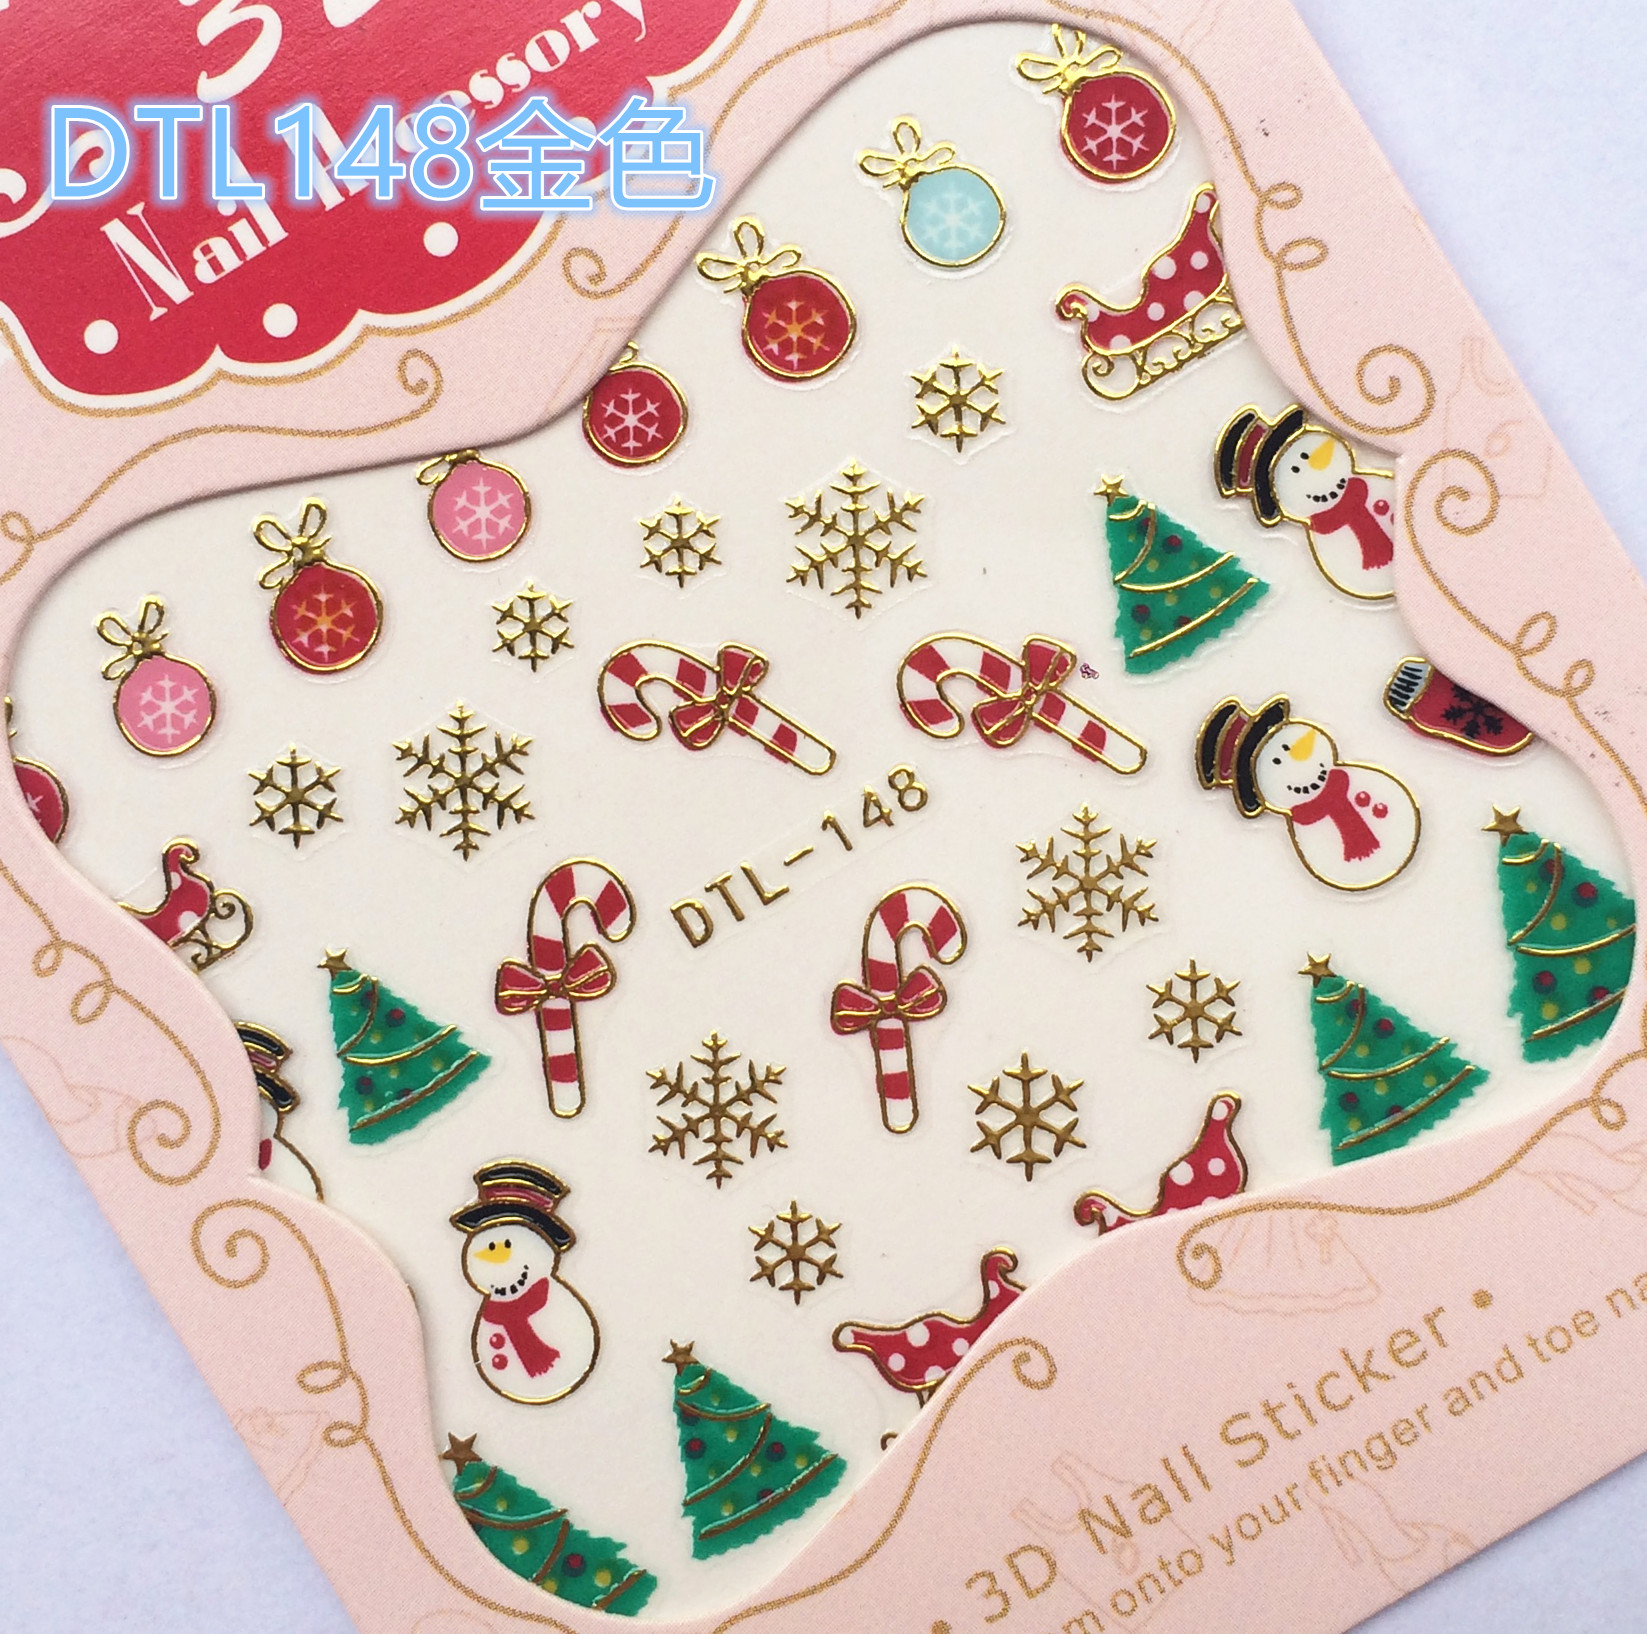 Rocooart Water Transfer Nails Art Sticker Merry Christmas 3D Golden Elements Nail Wrap Sticker Tips Manicura stickers for Nails 30 pcs floral design manicure transfer nail art tips stickers decals 3d flowers beauty tickers for nails